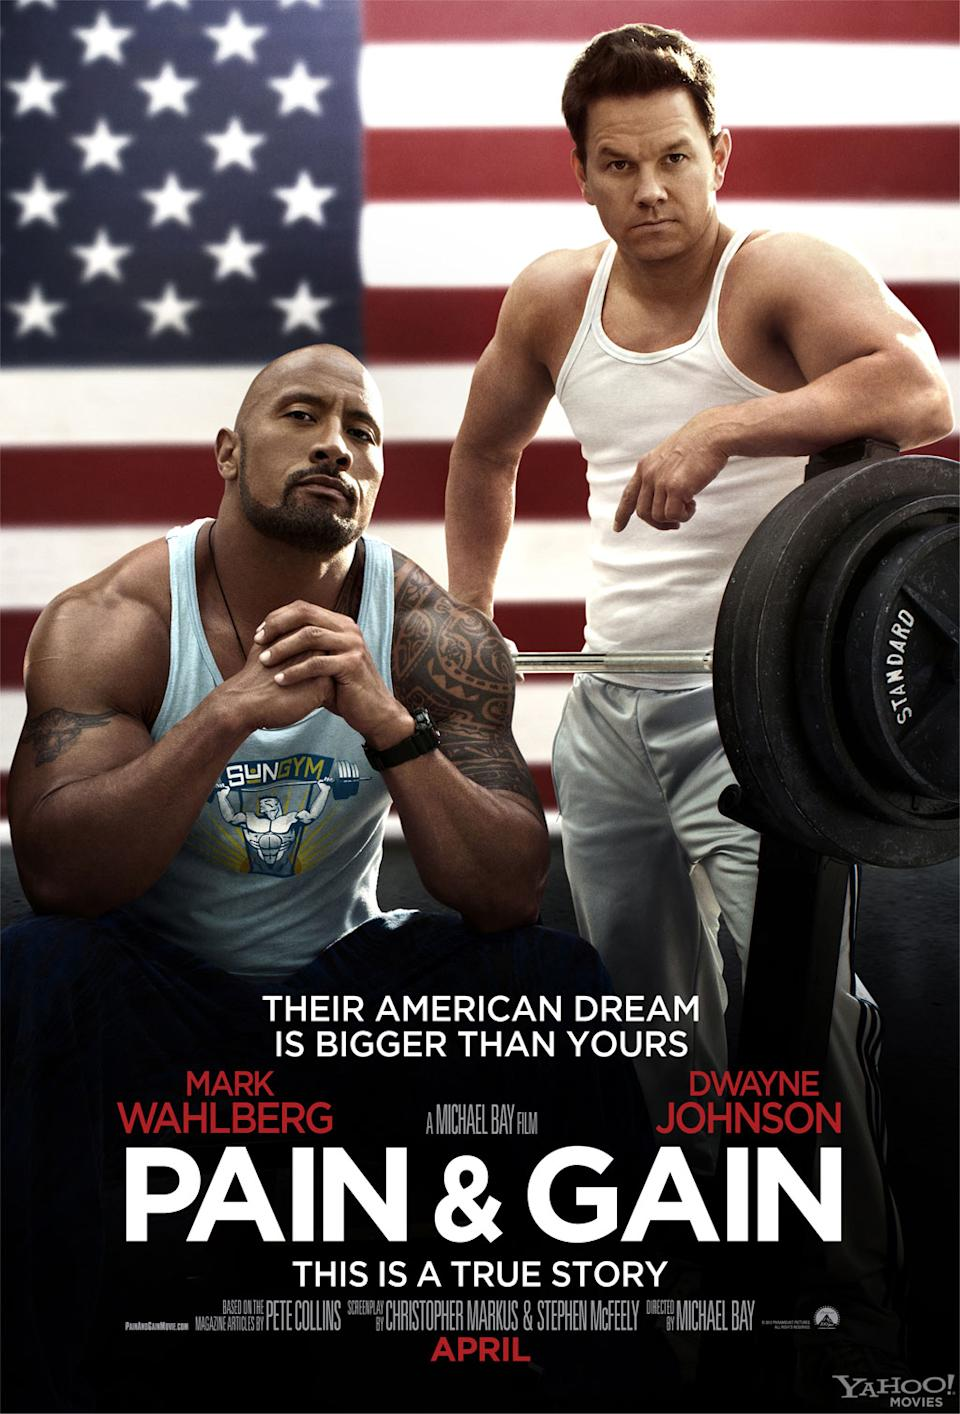 """Mark Wahlberg and Dwayne Johnson star in Paramount Pictures' """"Pain & Gain"""" - 2013<br> <a href=""""http://l.yimg.com/os/251/2012/12/07/Pain-Gainposter-watermark-jpg_235517.jpg"""" rel=""""nofollow noopener"""" target=""""_blank"""" data-ylk=""""slk:View full size >>"""" class=""""link rapid-noclick-resp"""">View full size >></a>"""